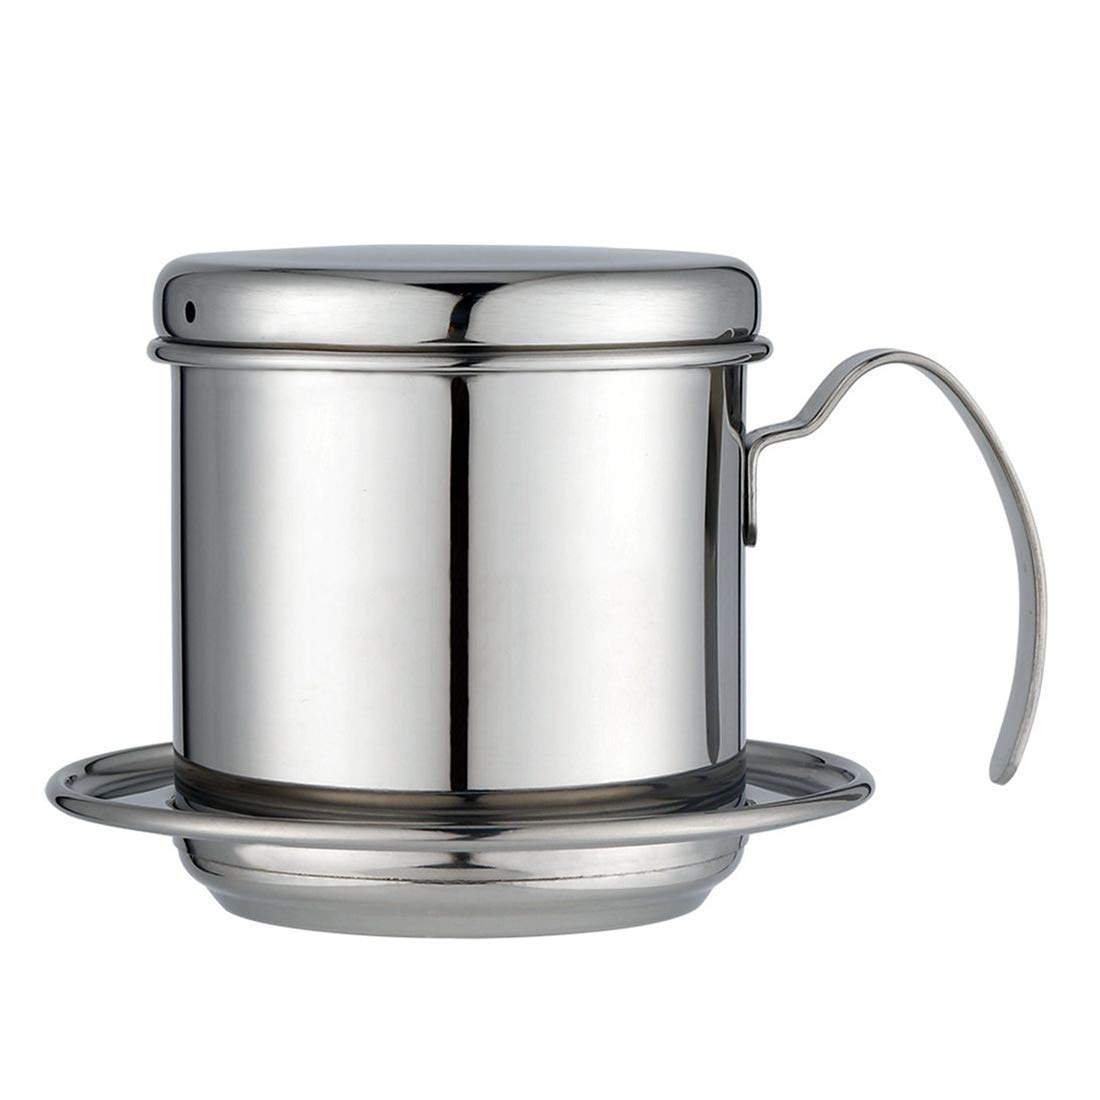 edasw Vietnamese Coffee Pot 304 Stainless Steel Hand-washing Pot Vietnamese Drip Pot Coffee Drip Pot Drip-type Coffee Pot (Color : Stainless steel primary color)